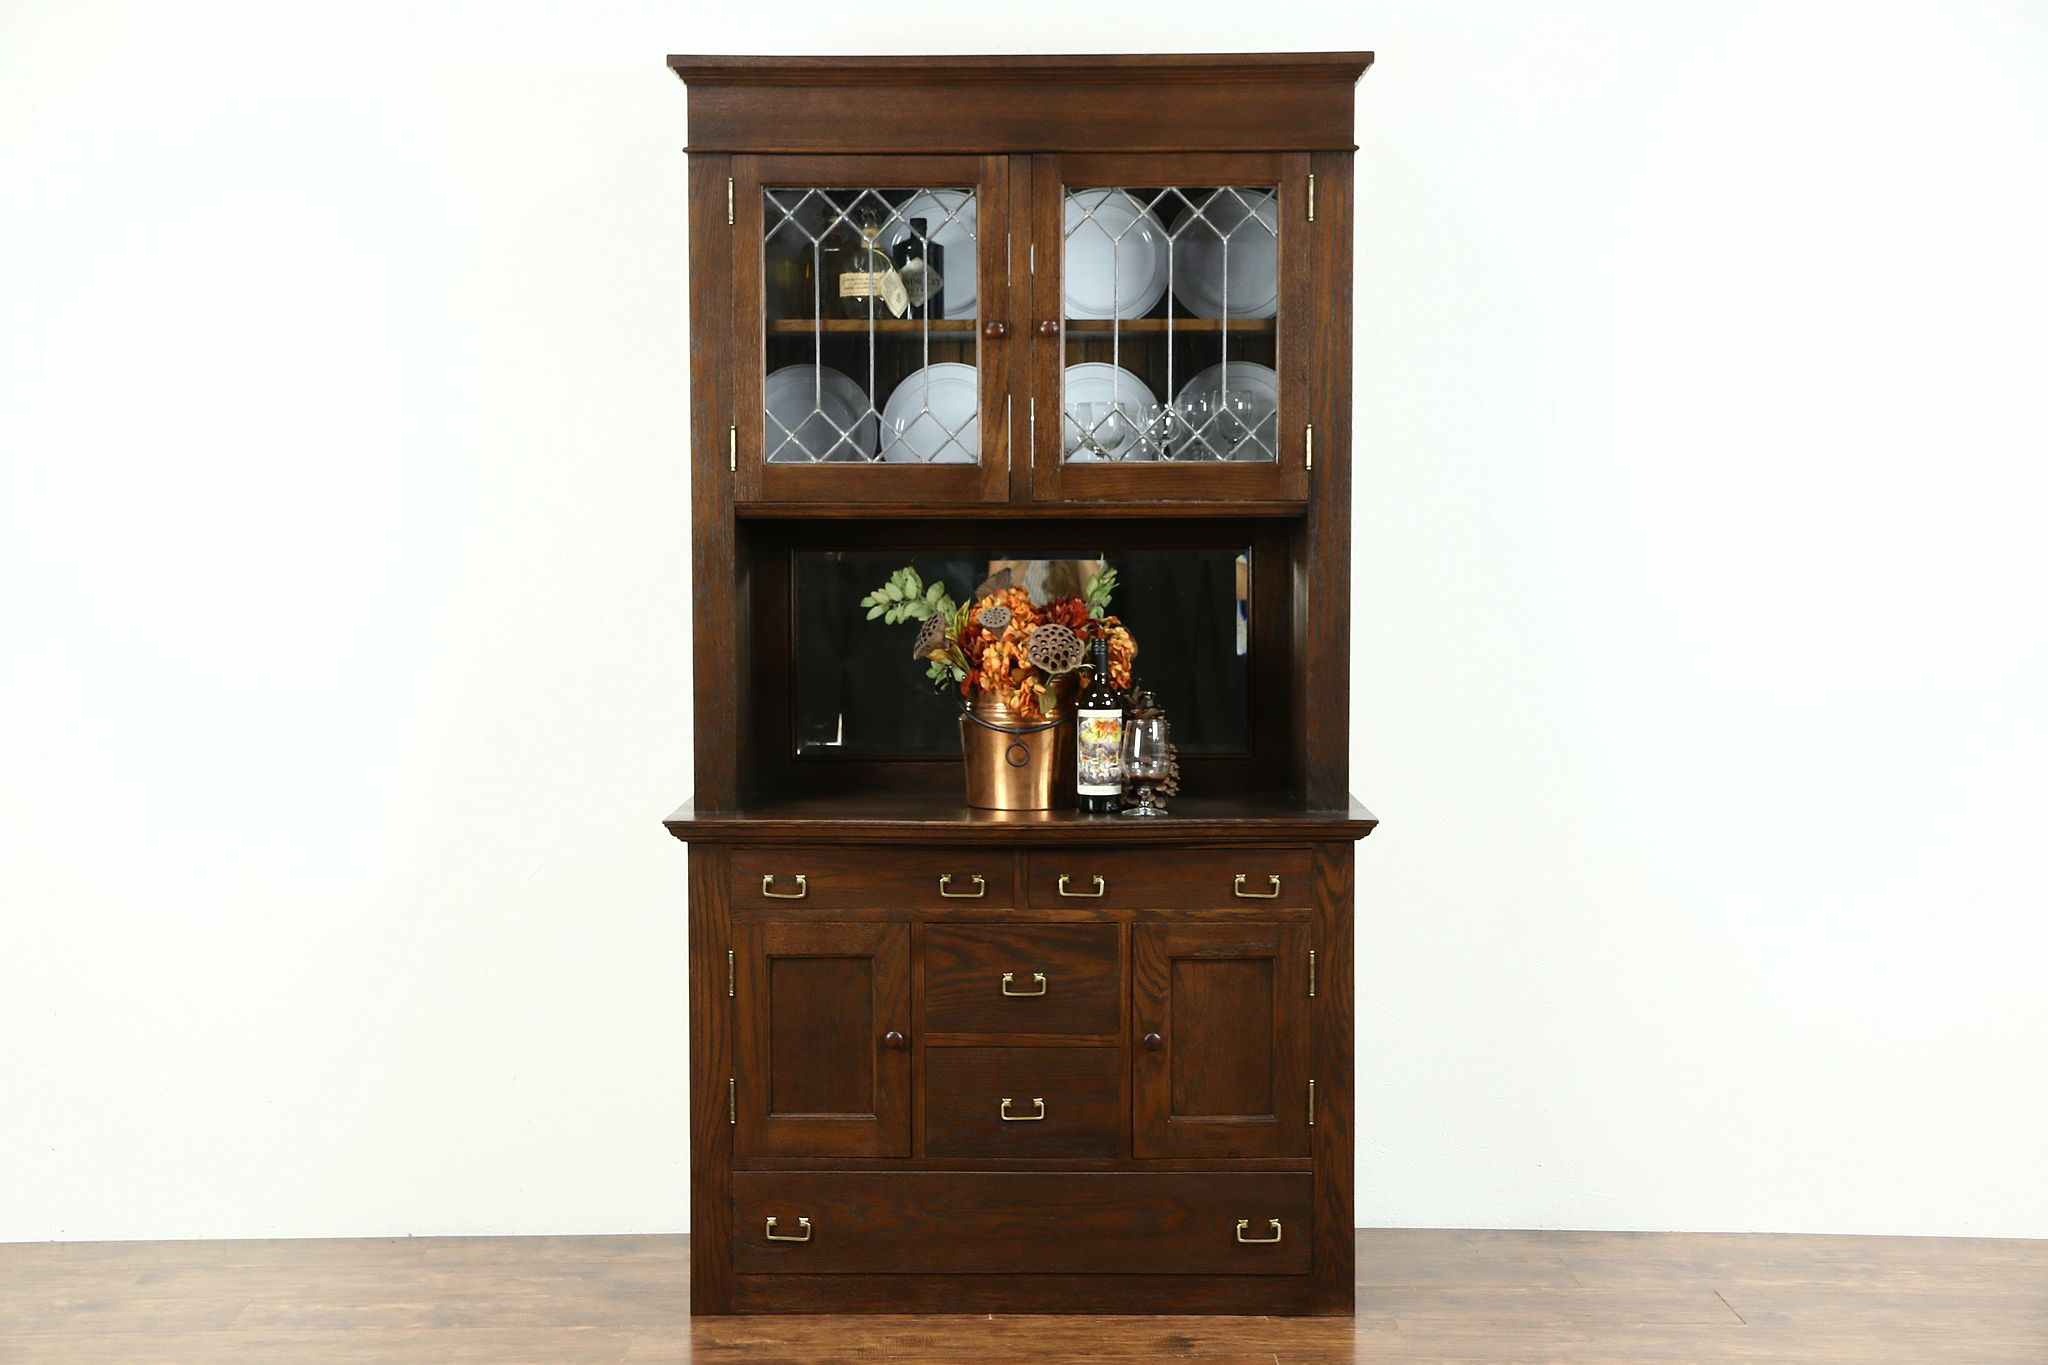 Delicieux Oak 1900 Antique Pantry Cabinet, Sideboard U0026 China, Leaded Glass Doors